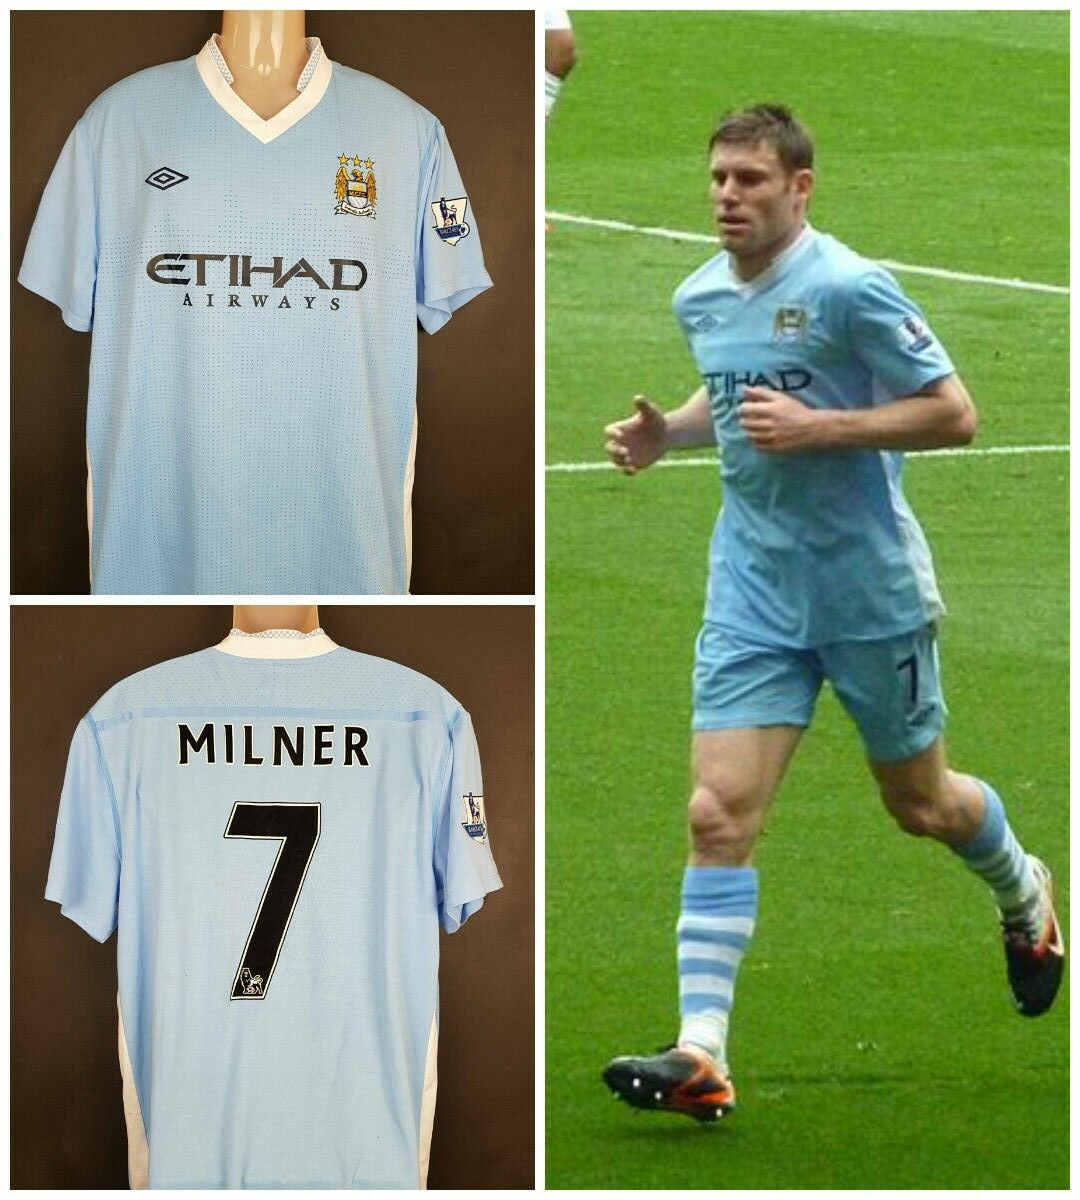 412a6eb87 Manchester City 2009 10 Umbro James Milner XL soccer shirt jersey home bluee